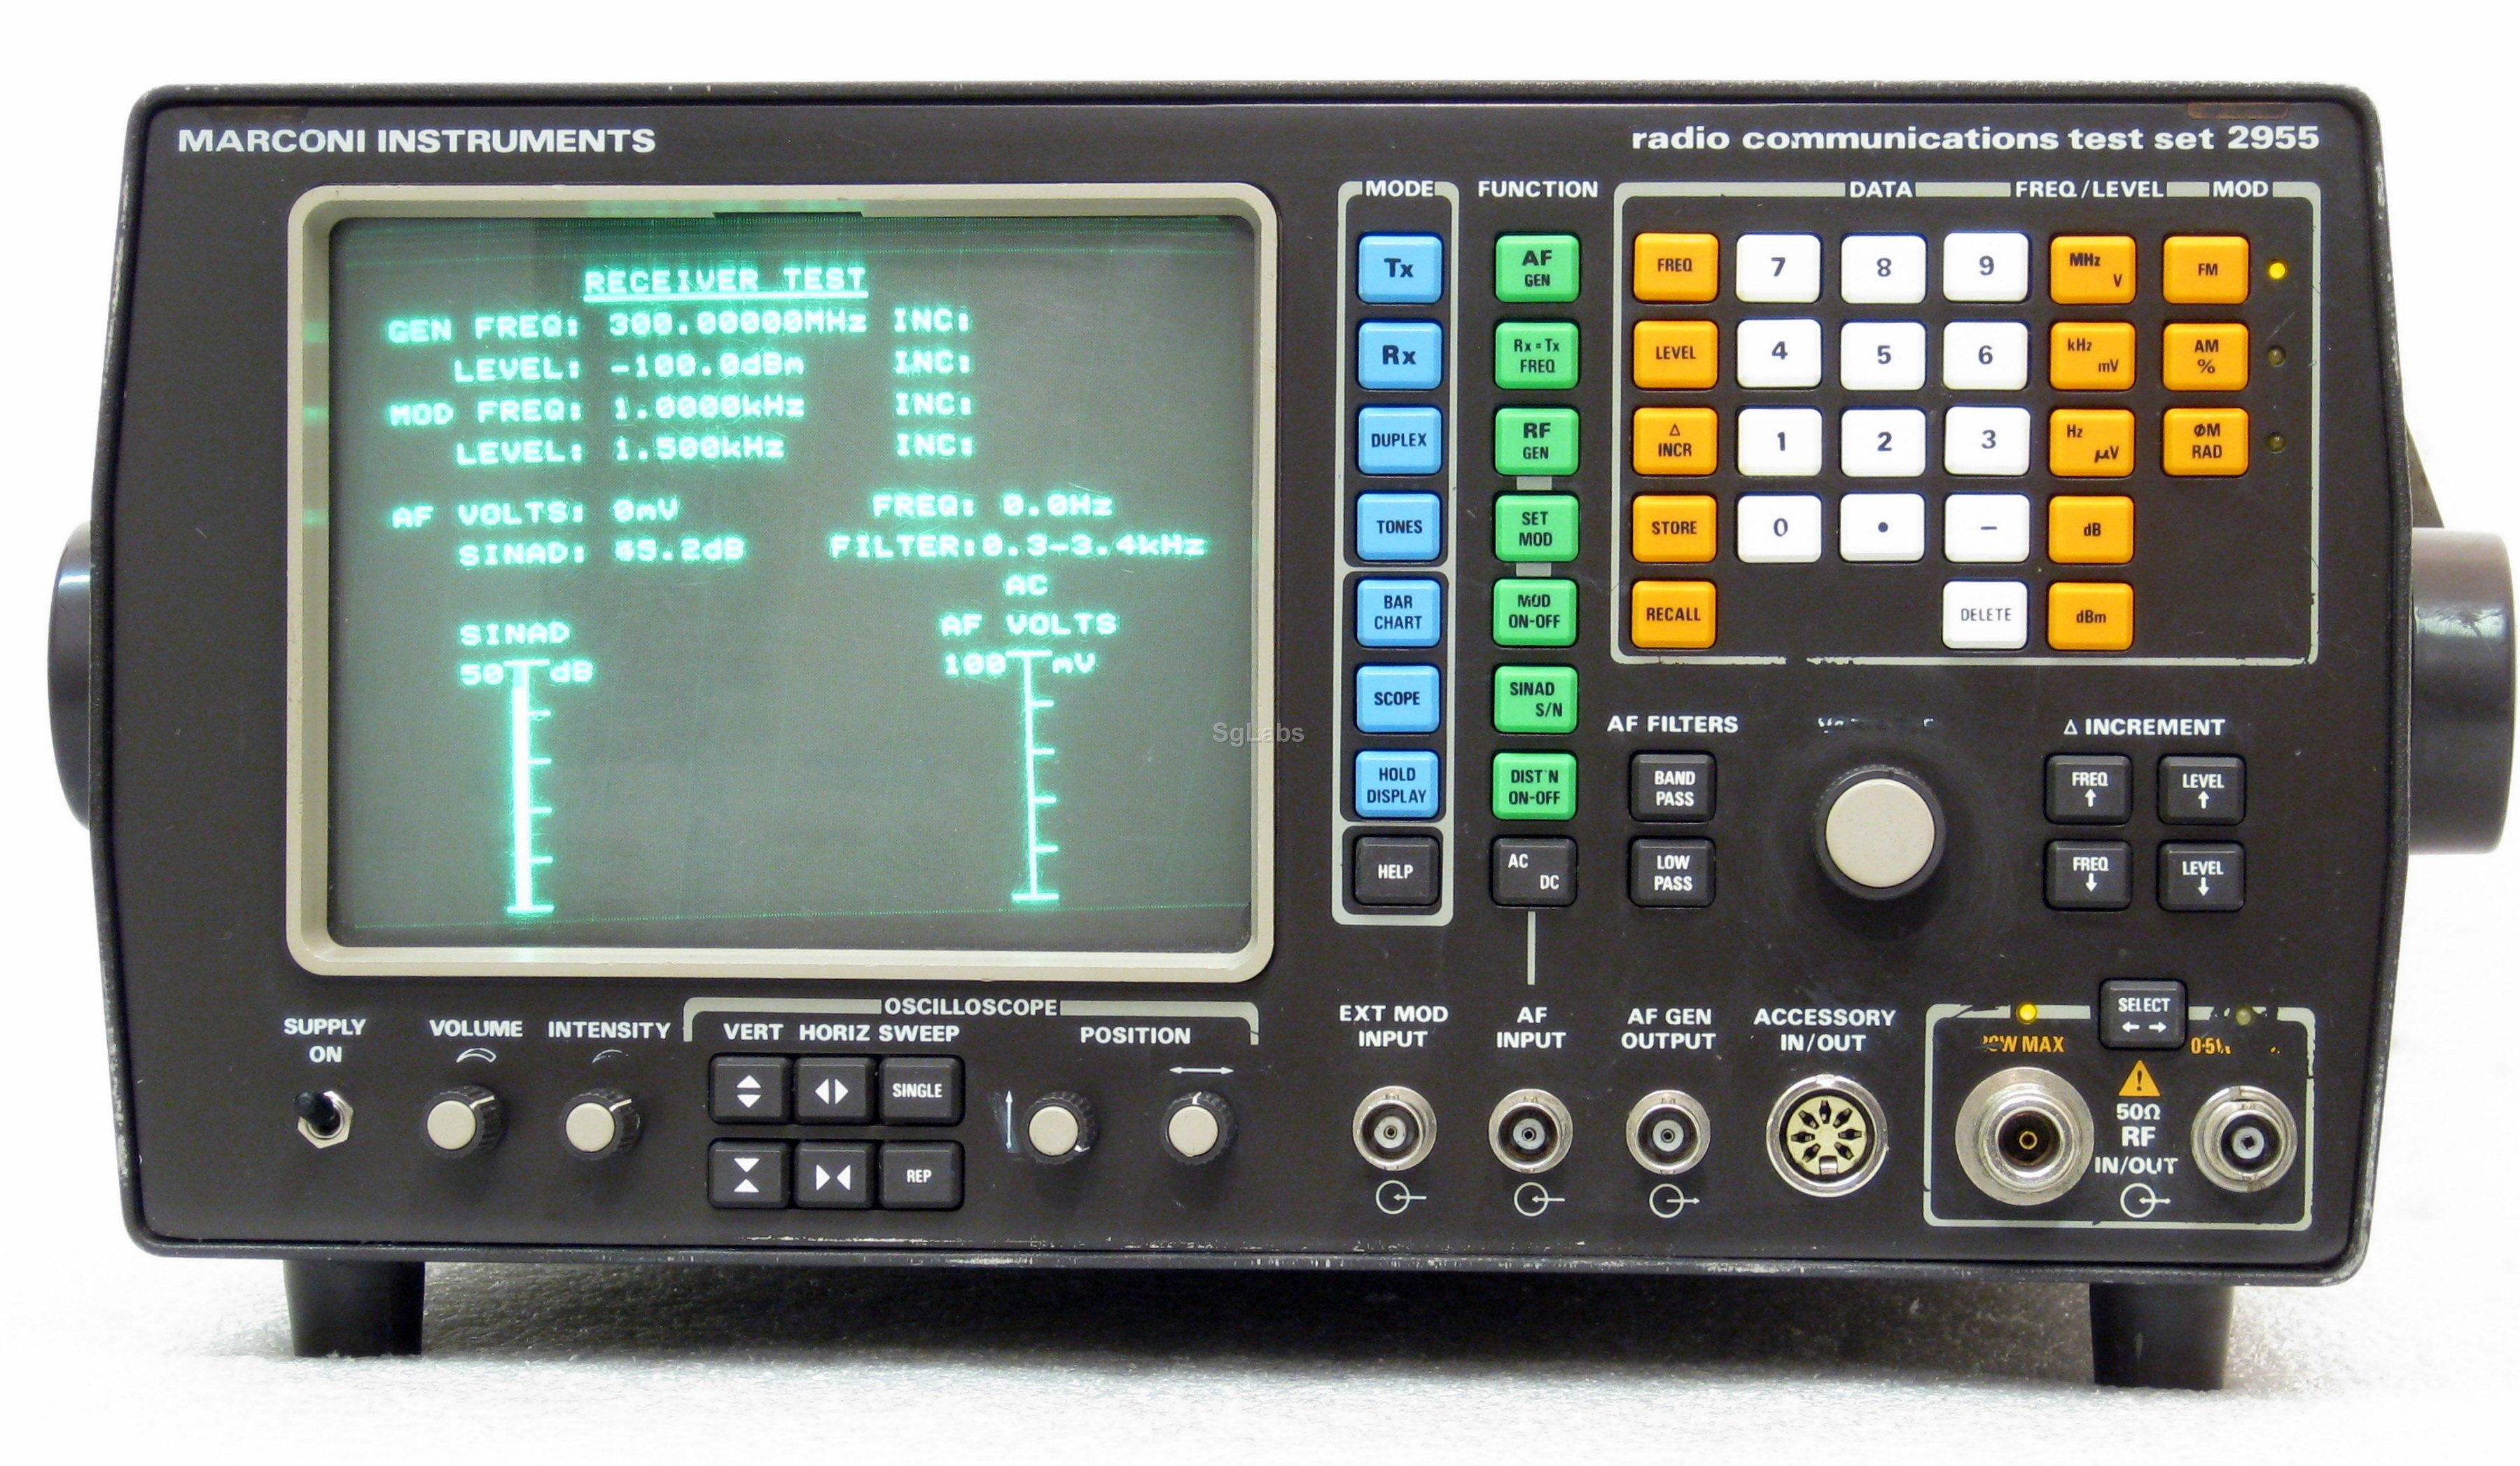 marconi 2955 rh sglabs it John Deere 2955 Craigslist JD 2955 Tractor Data